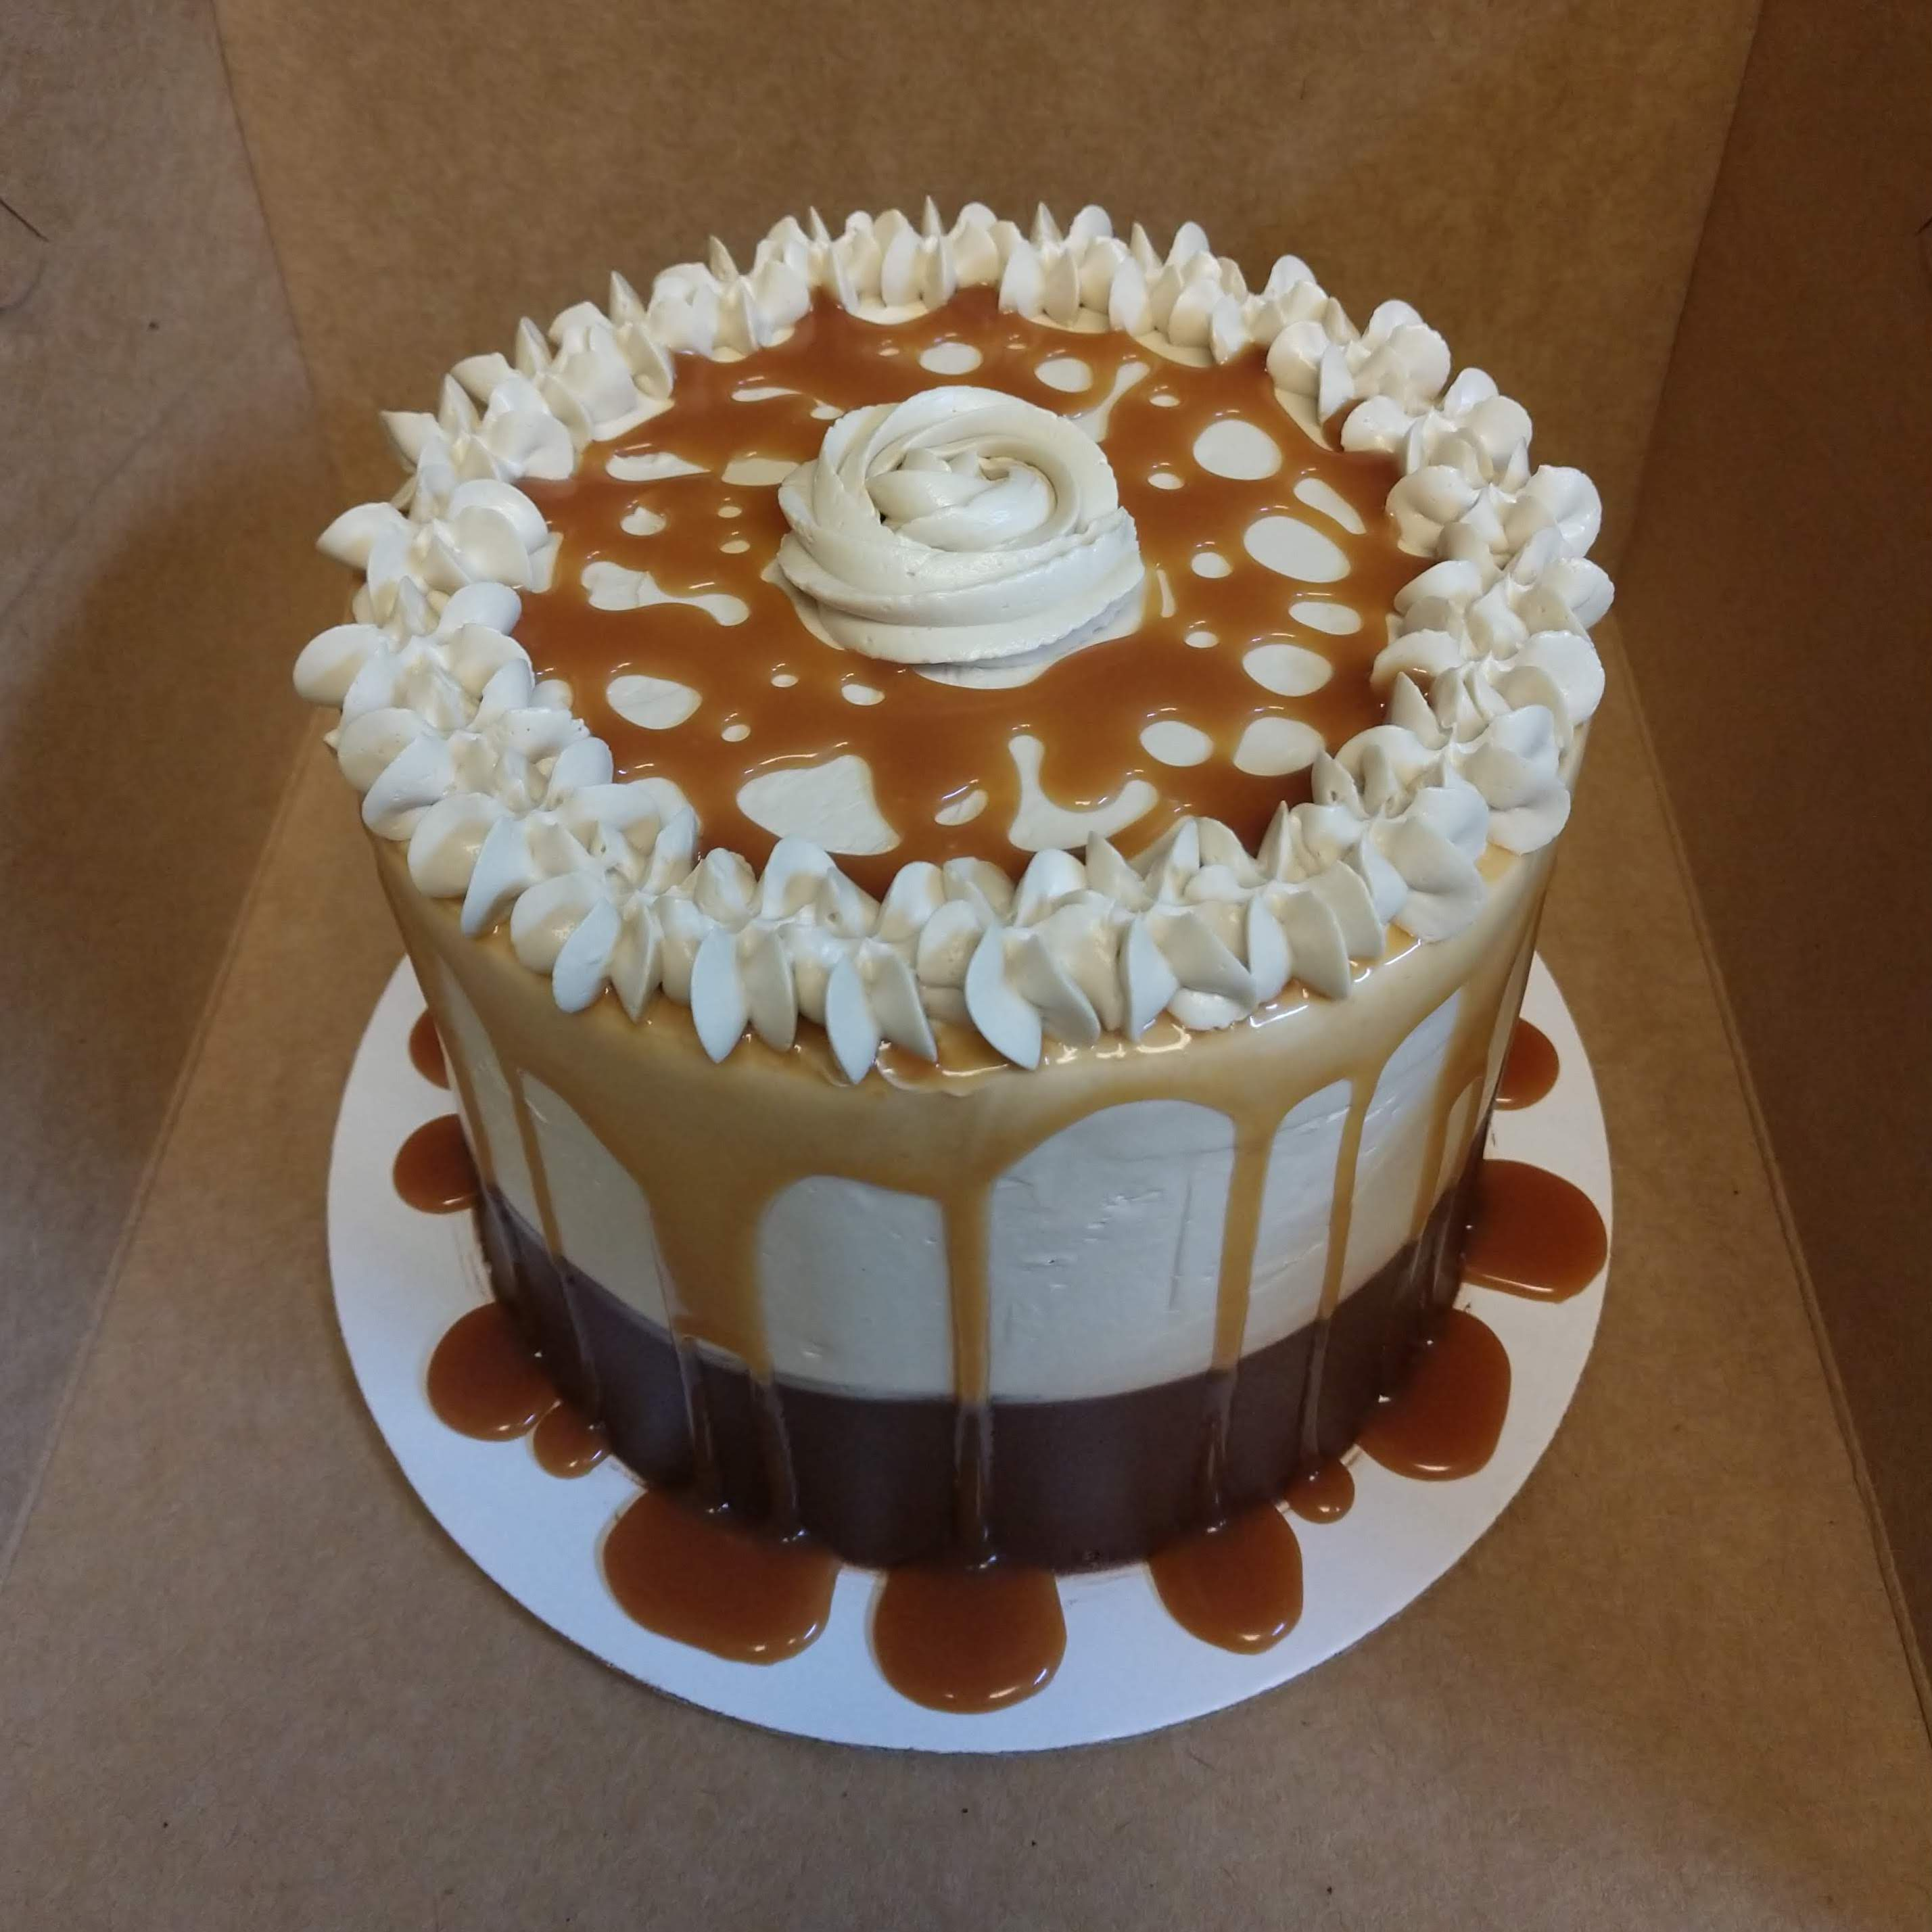 6in cake with caramel buttercream and caramel drizzle